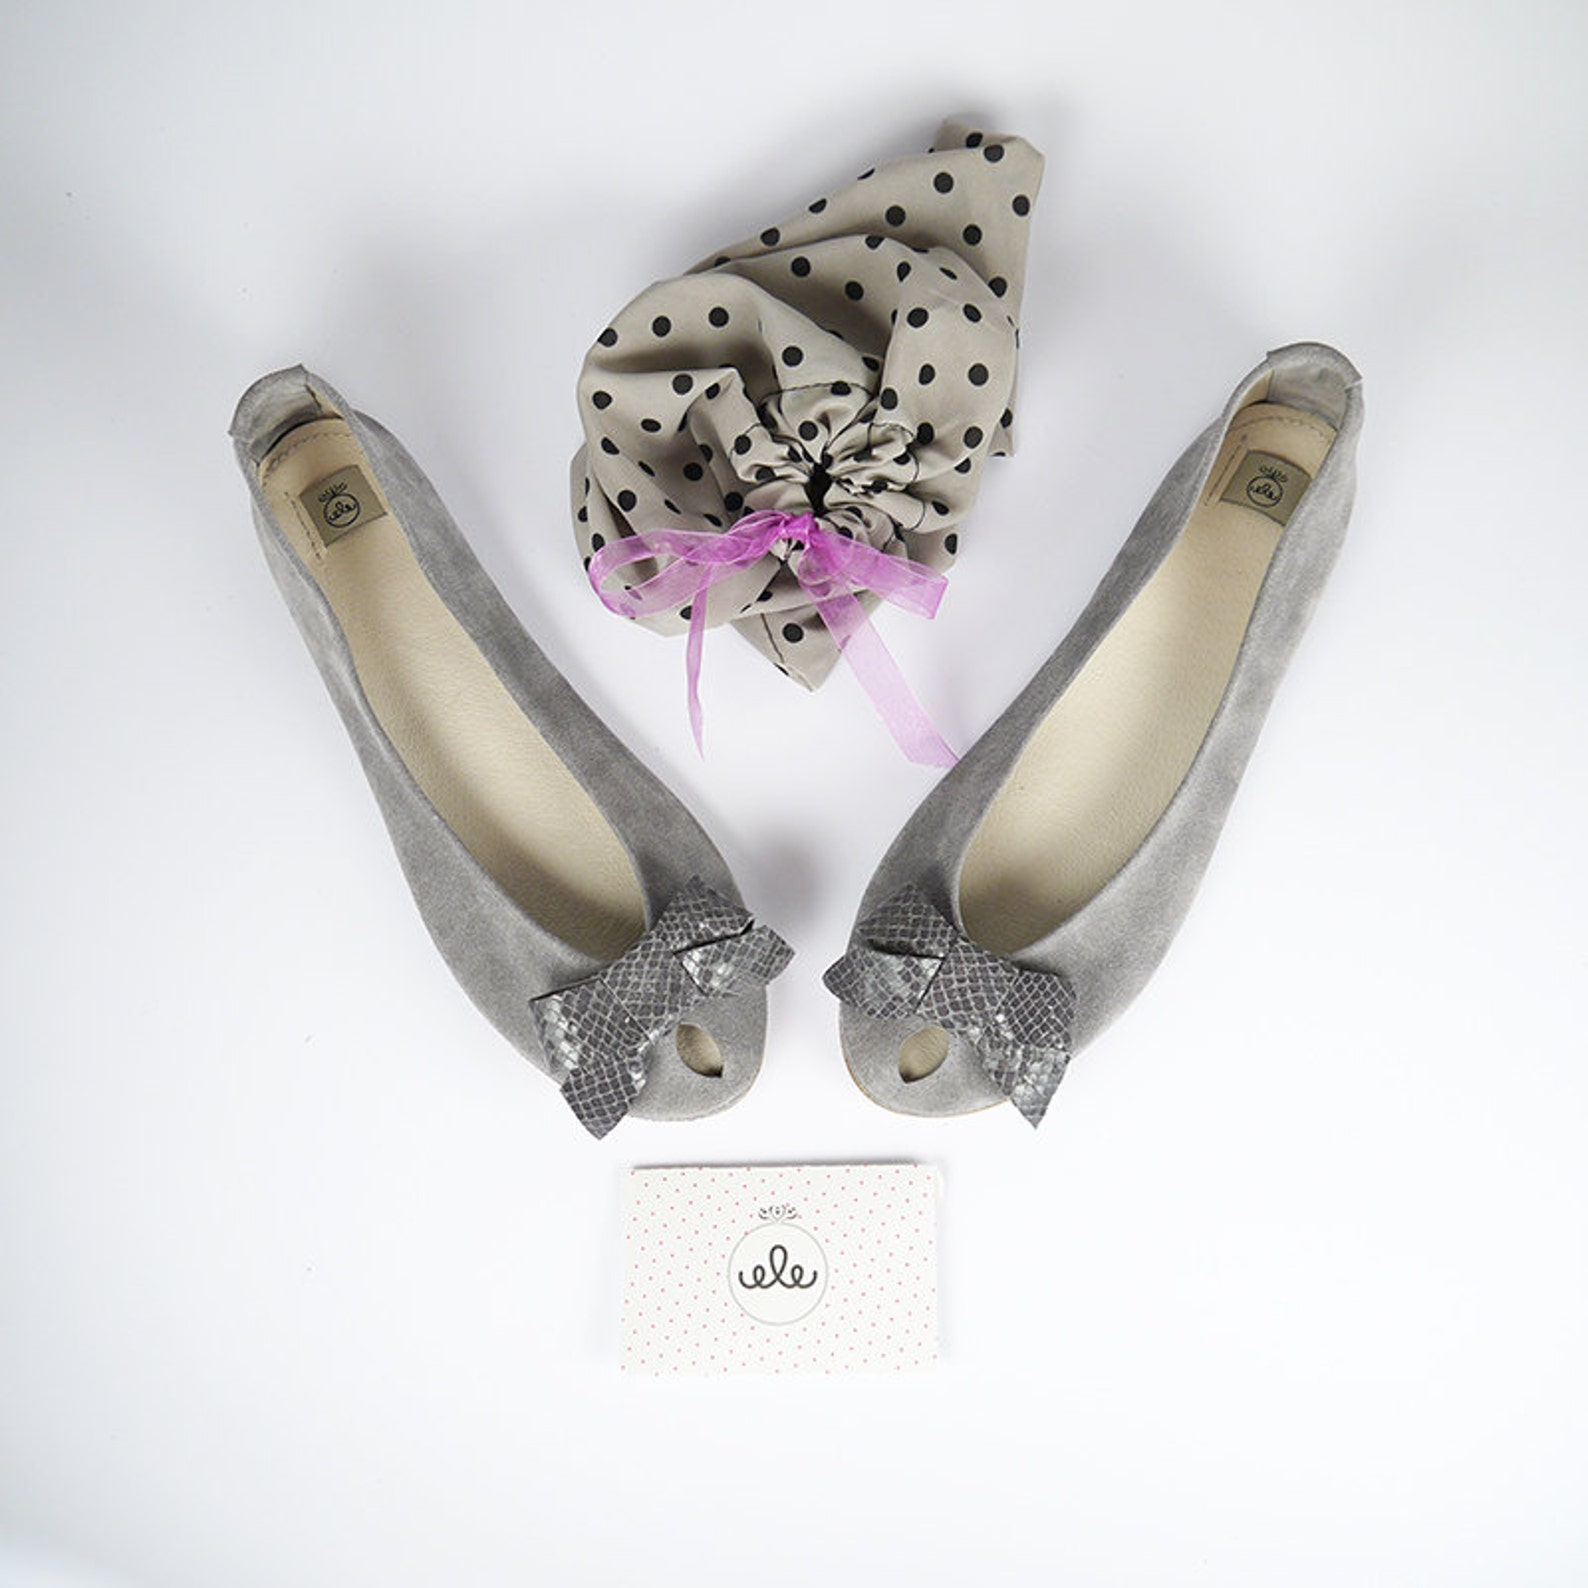 ballet flats shoes. women shoes. leather shoes. handmade peep toe. gray shoes. open toes flats. bridal shoes with bow. gray wedd